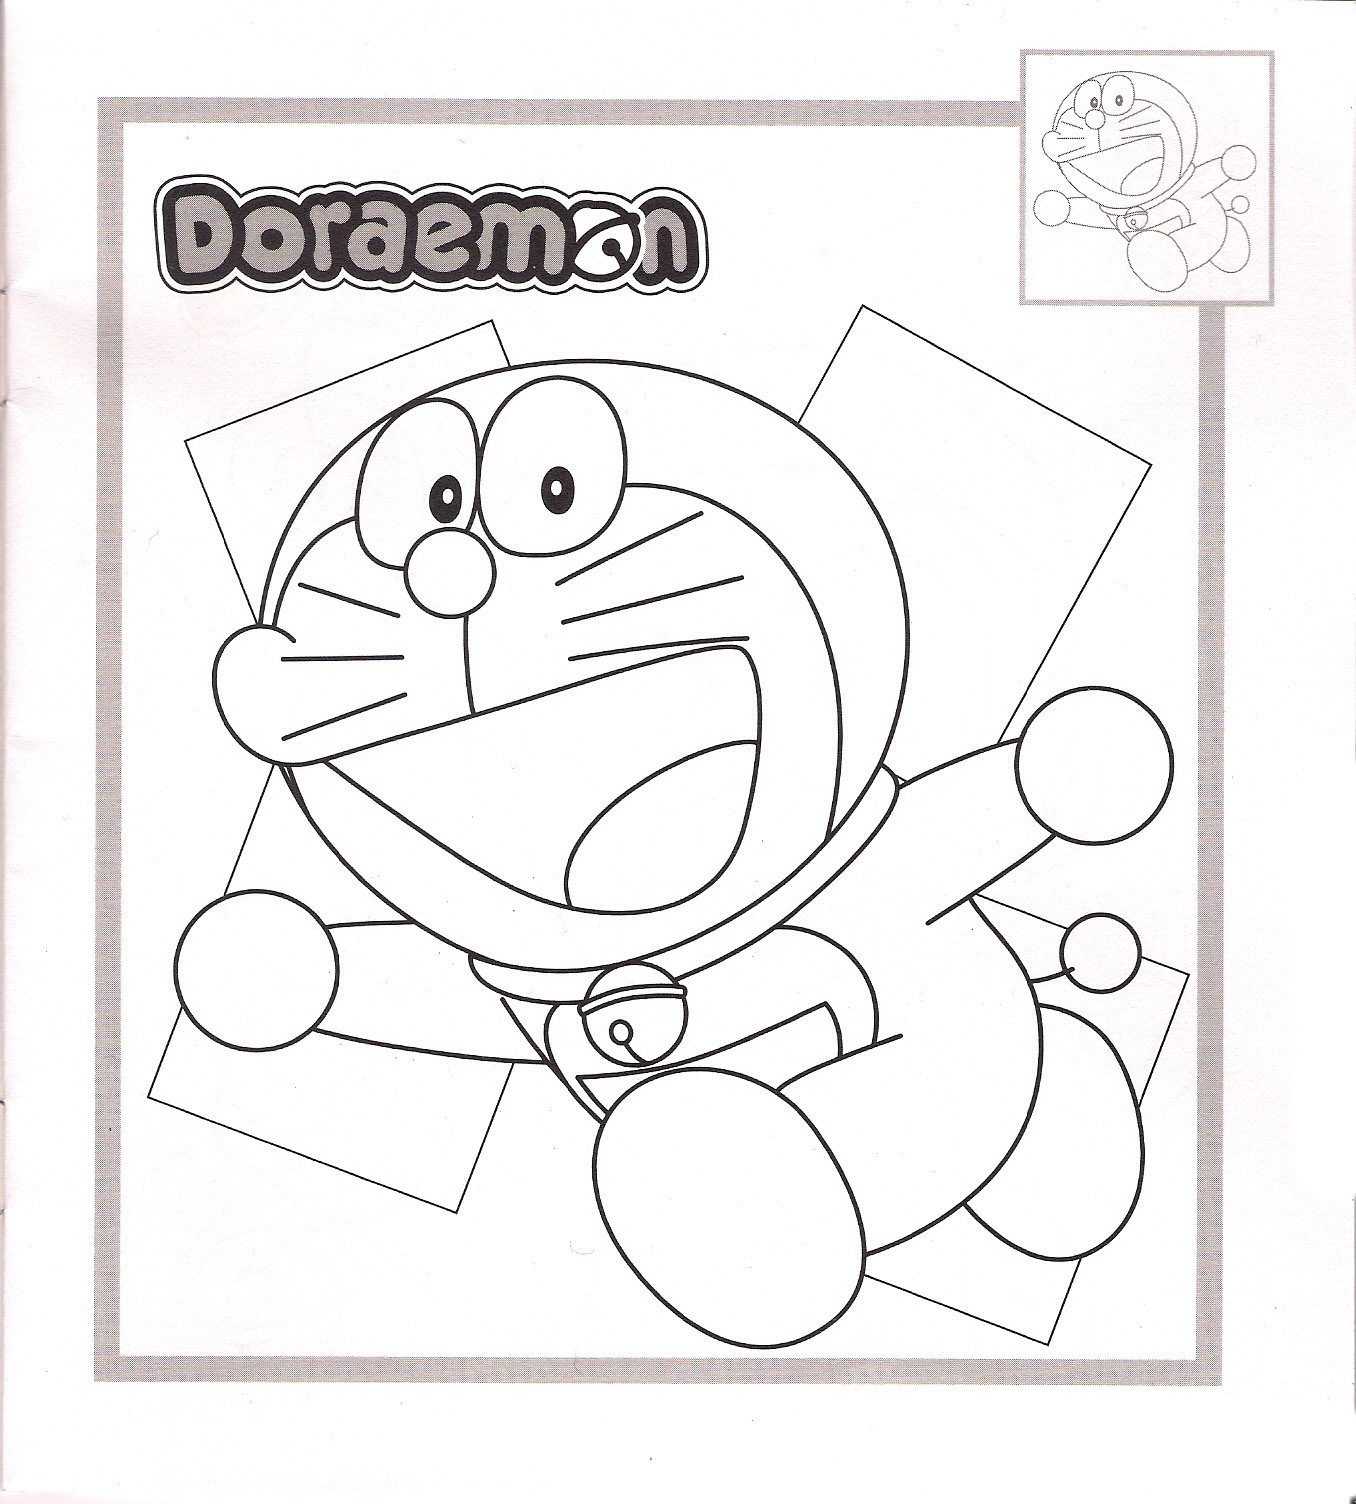 Doraemon coloring games online - Doraemon Colouring Pages To Print